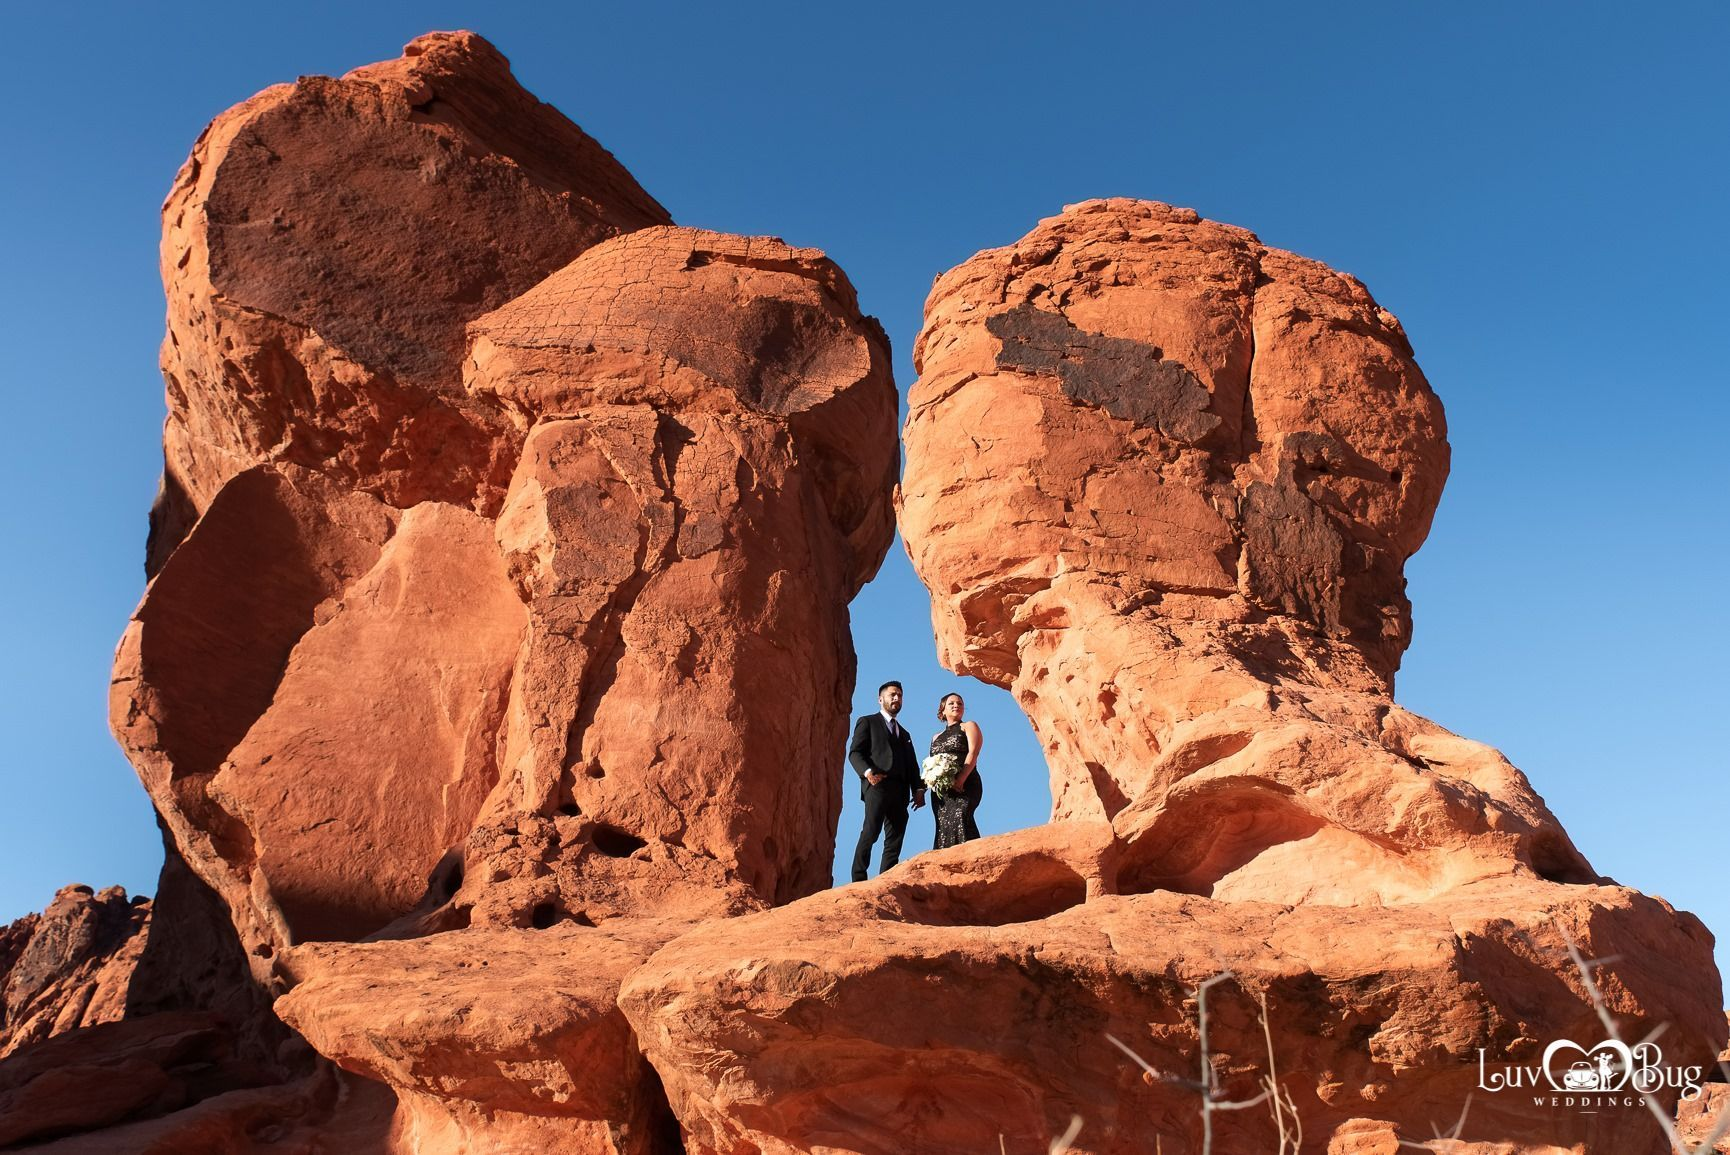 Congrats Mario and Veronica on your Valley of Fire wedding